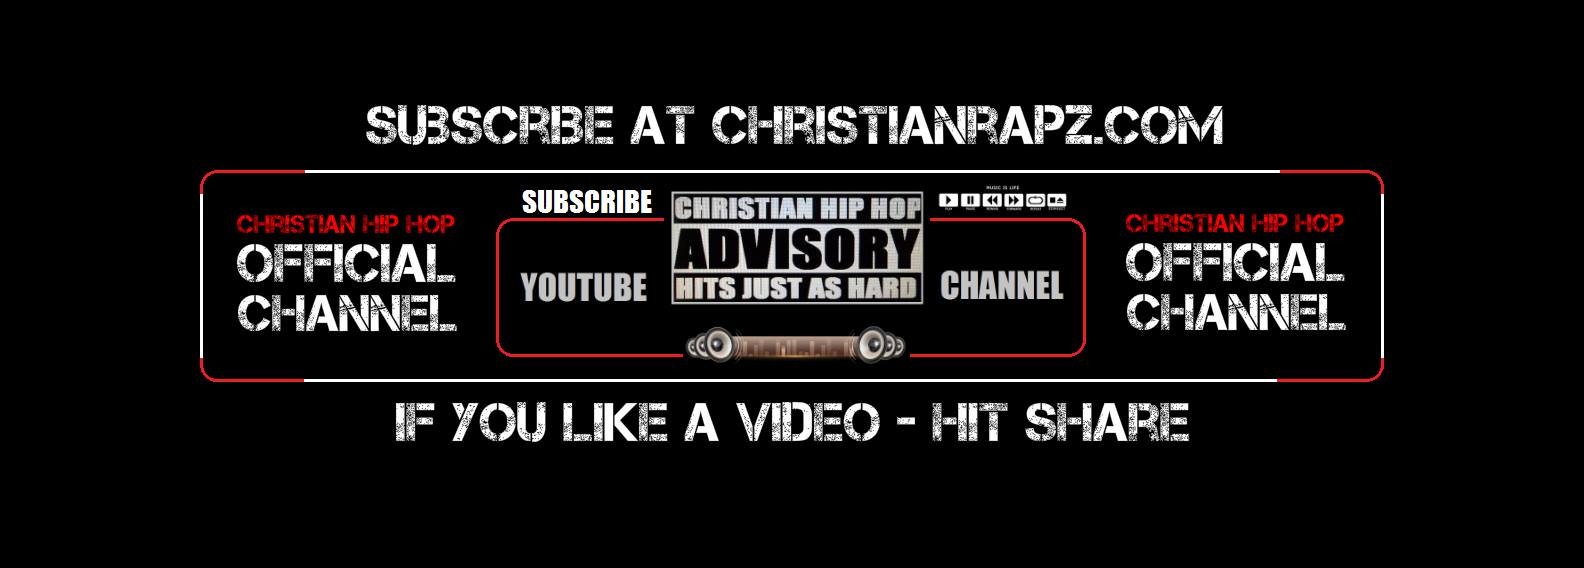 Christian Hip Hop Hits Just as Hard